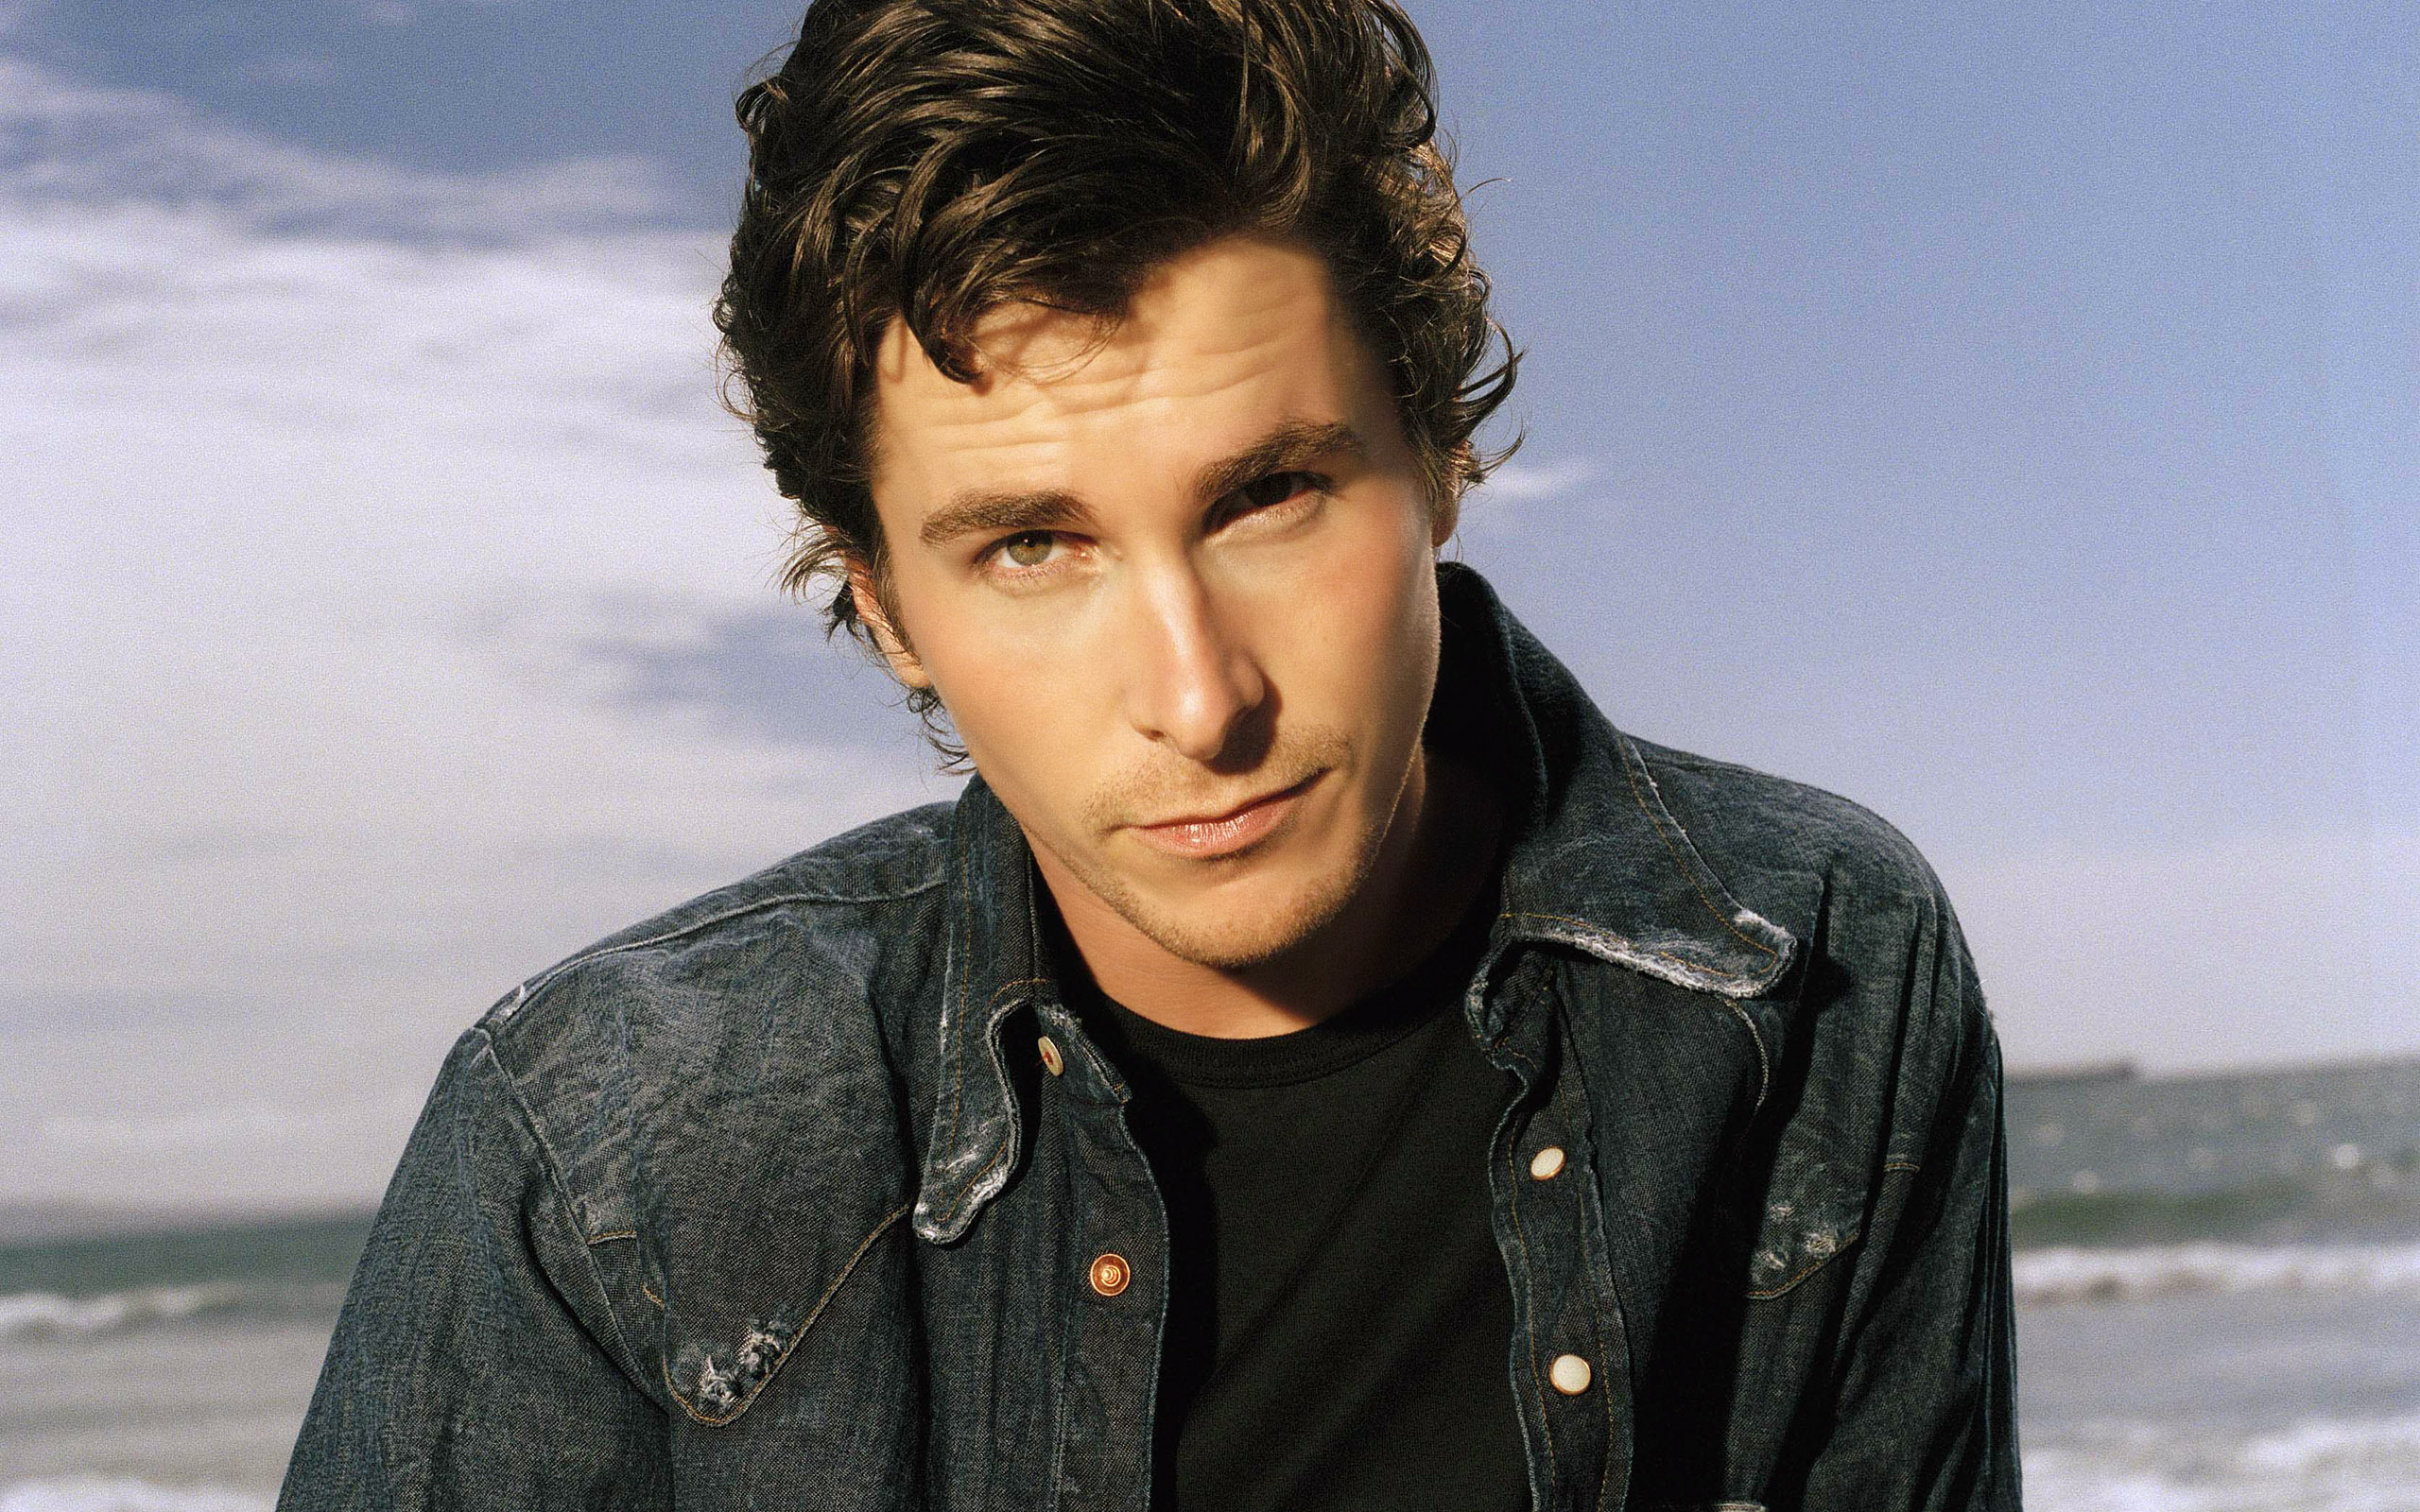 Christian Bale Widescreen